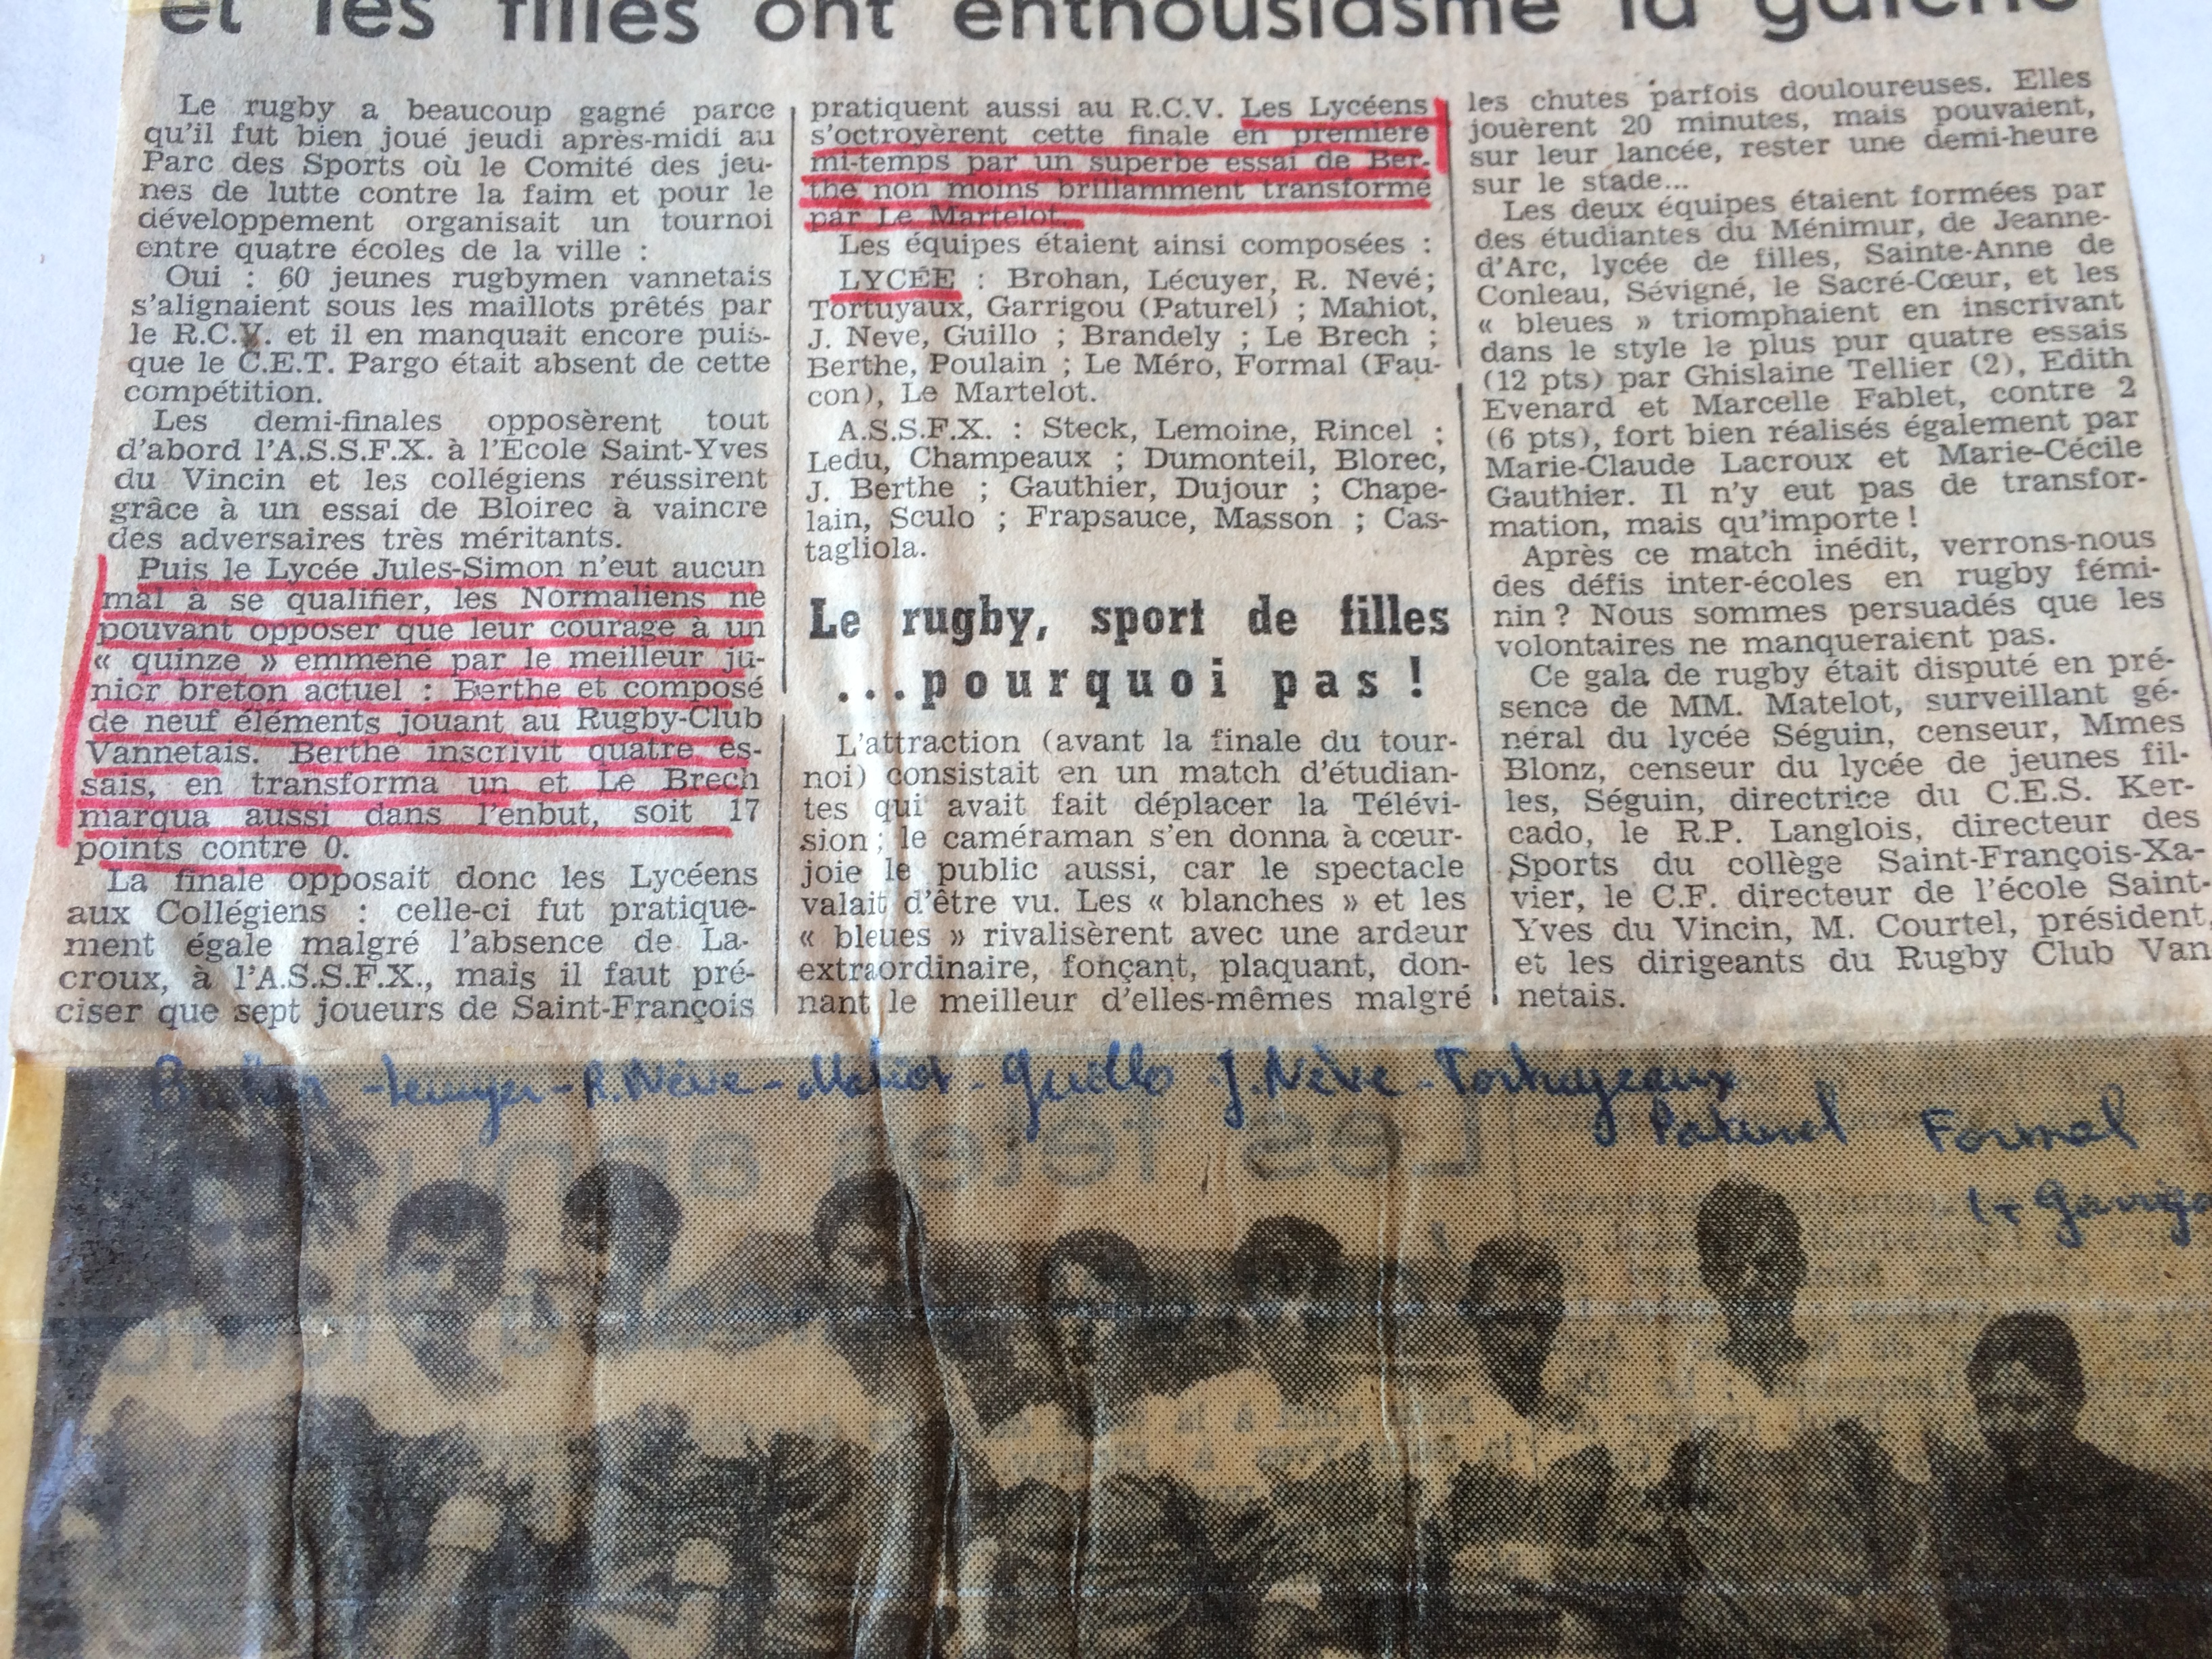 11 mai 67 article journal